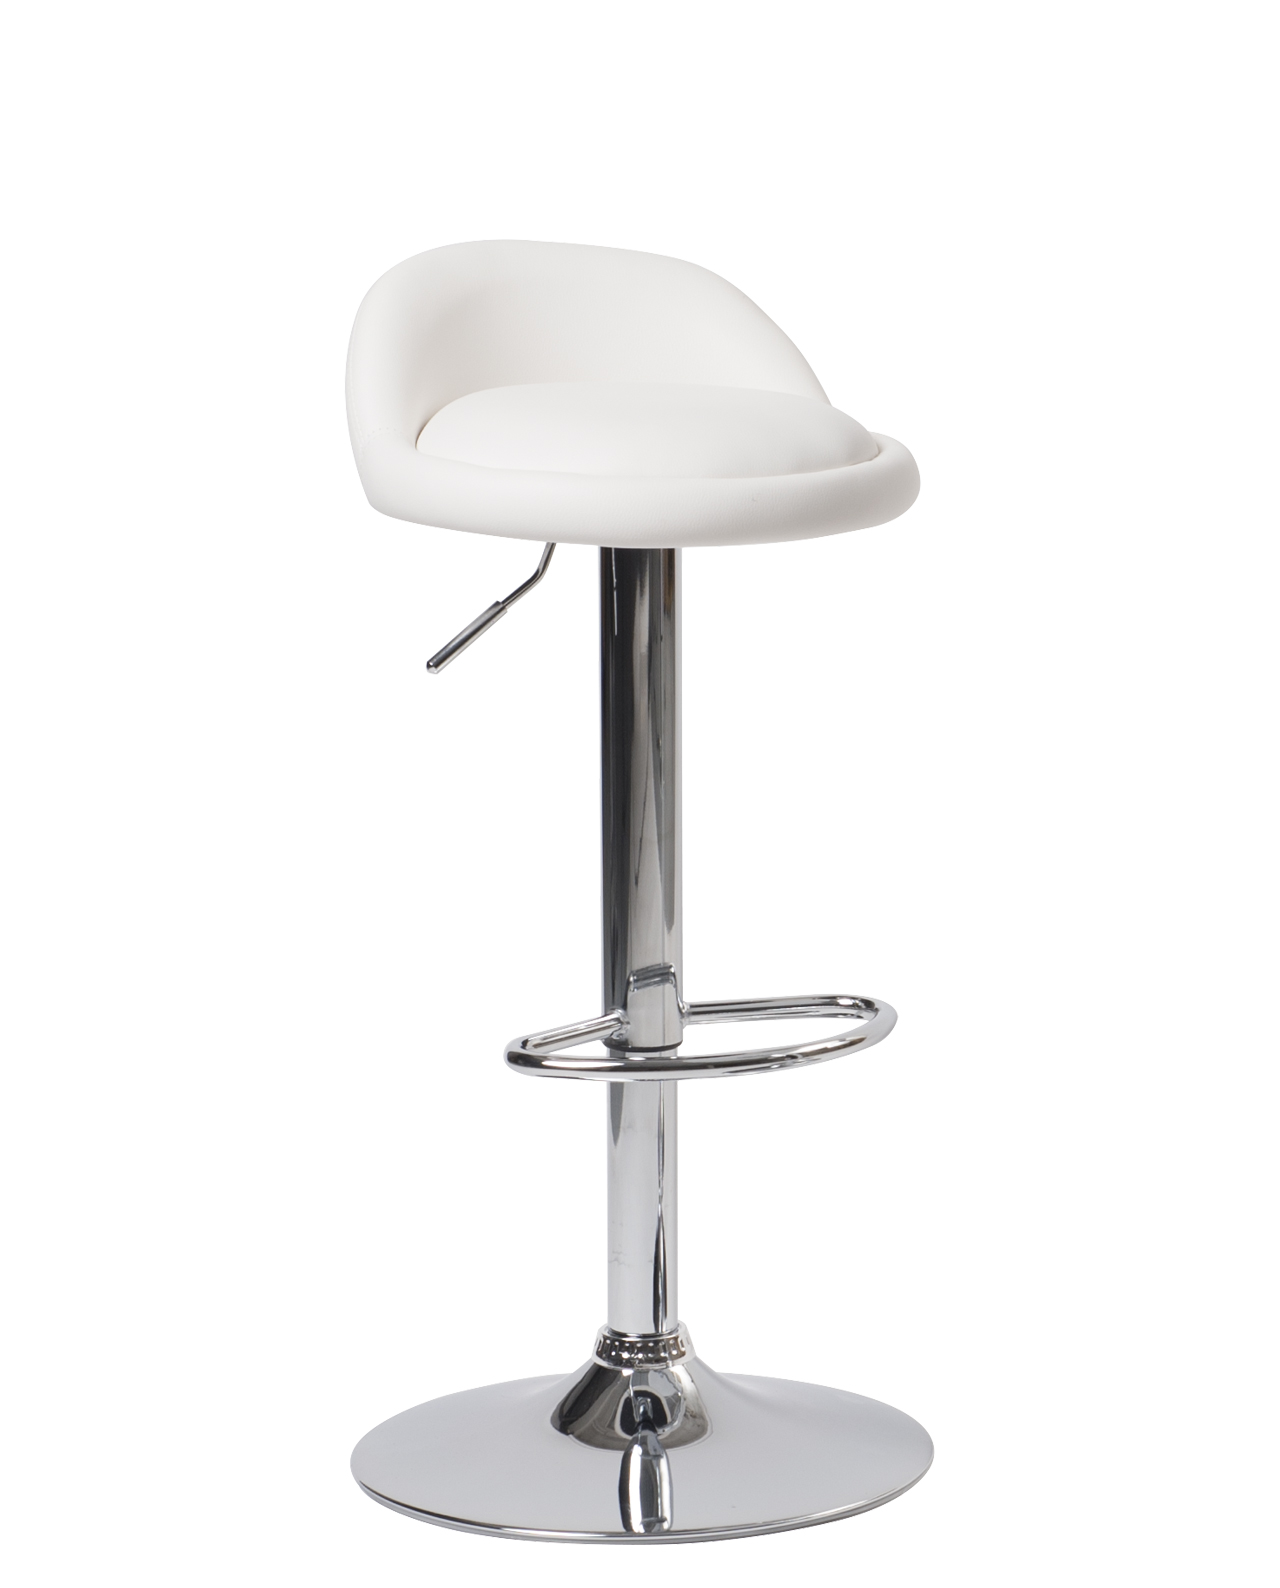 Tabouret De Bar Simili Cuir Chrome Sati Lot De 2 Kayelles Com